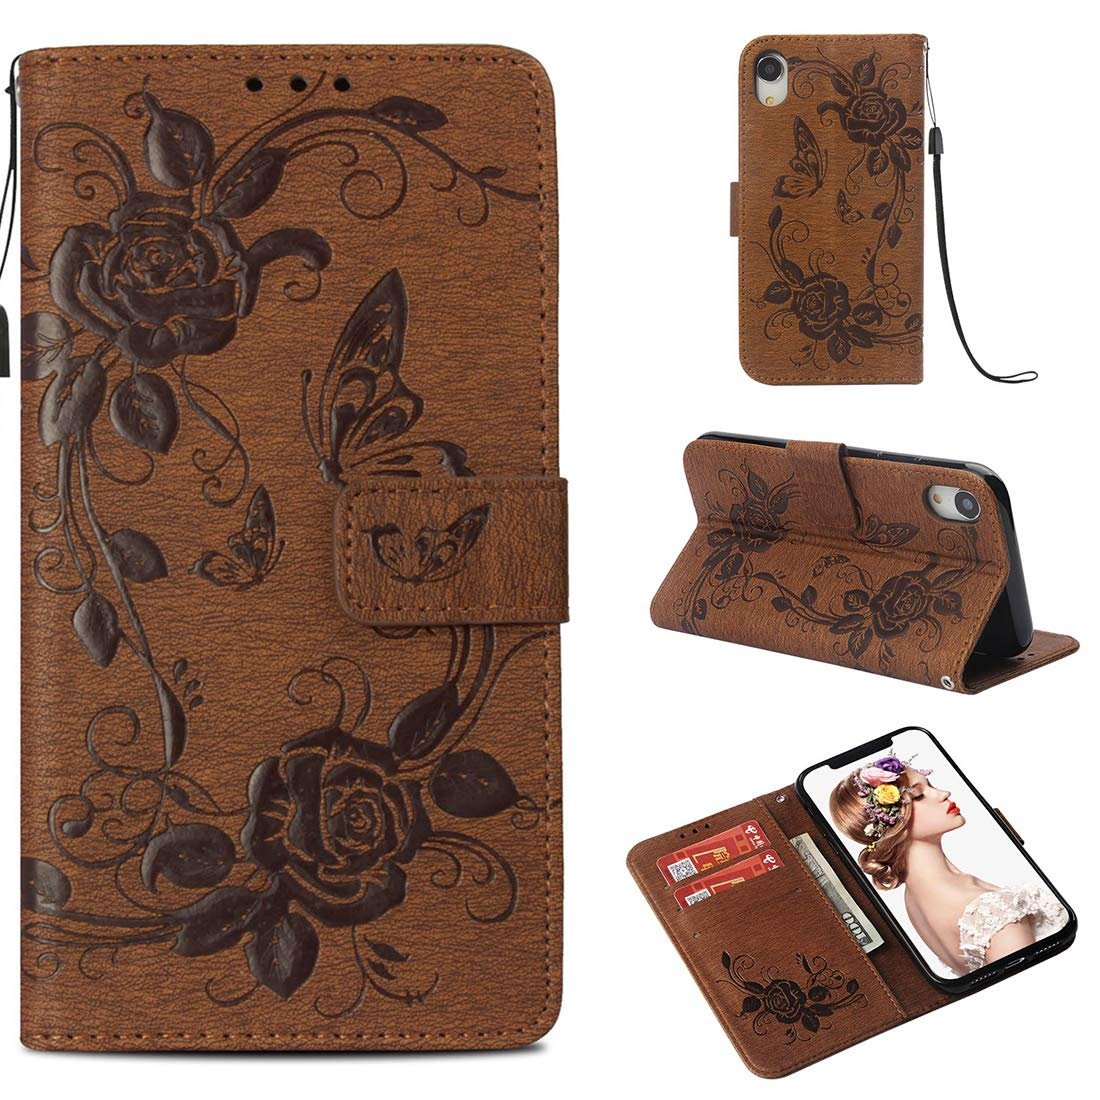 iPhone XR Case, Lyzwn Premium PU Leather Flip Wallet Case with Card Holder Magnetic Closure and Stand Feature for iPhone XR Cover